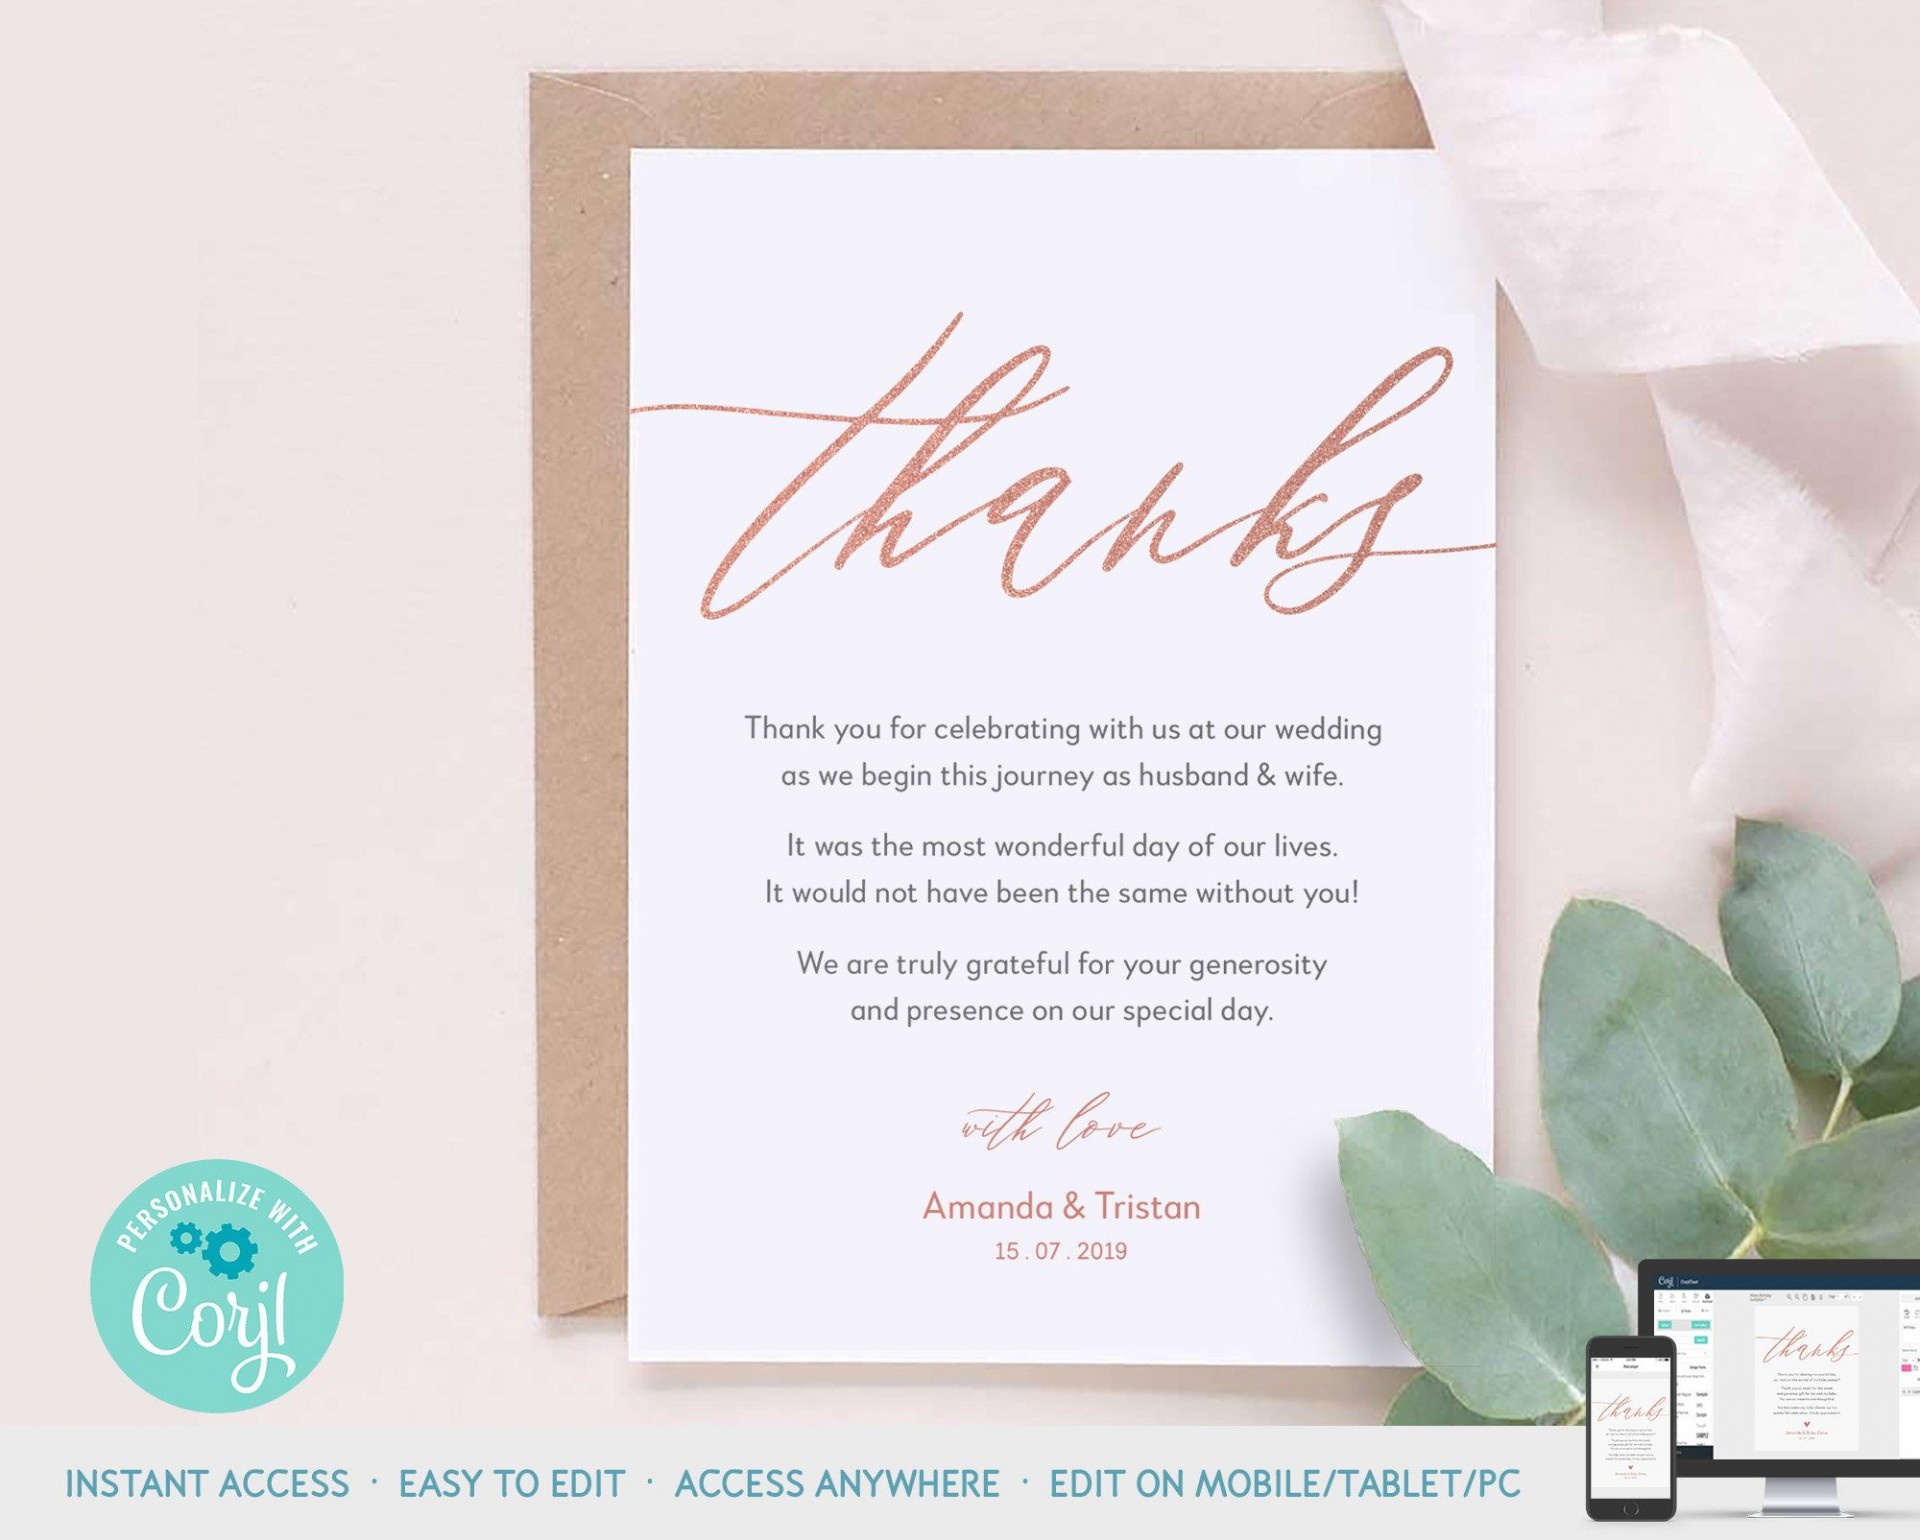 004 Exceptional Thank You Card Template Wedding Highest Clarity  Free Printable Publisher1920